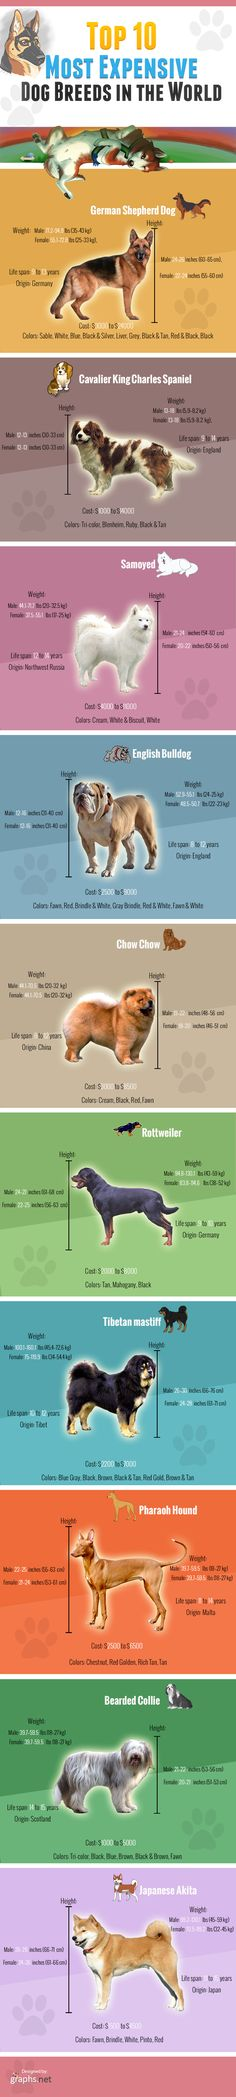 Top 10 Most Expensive Dog Breeds in the World Infographic